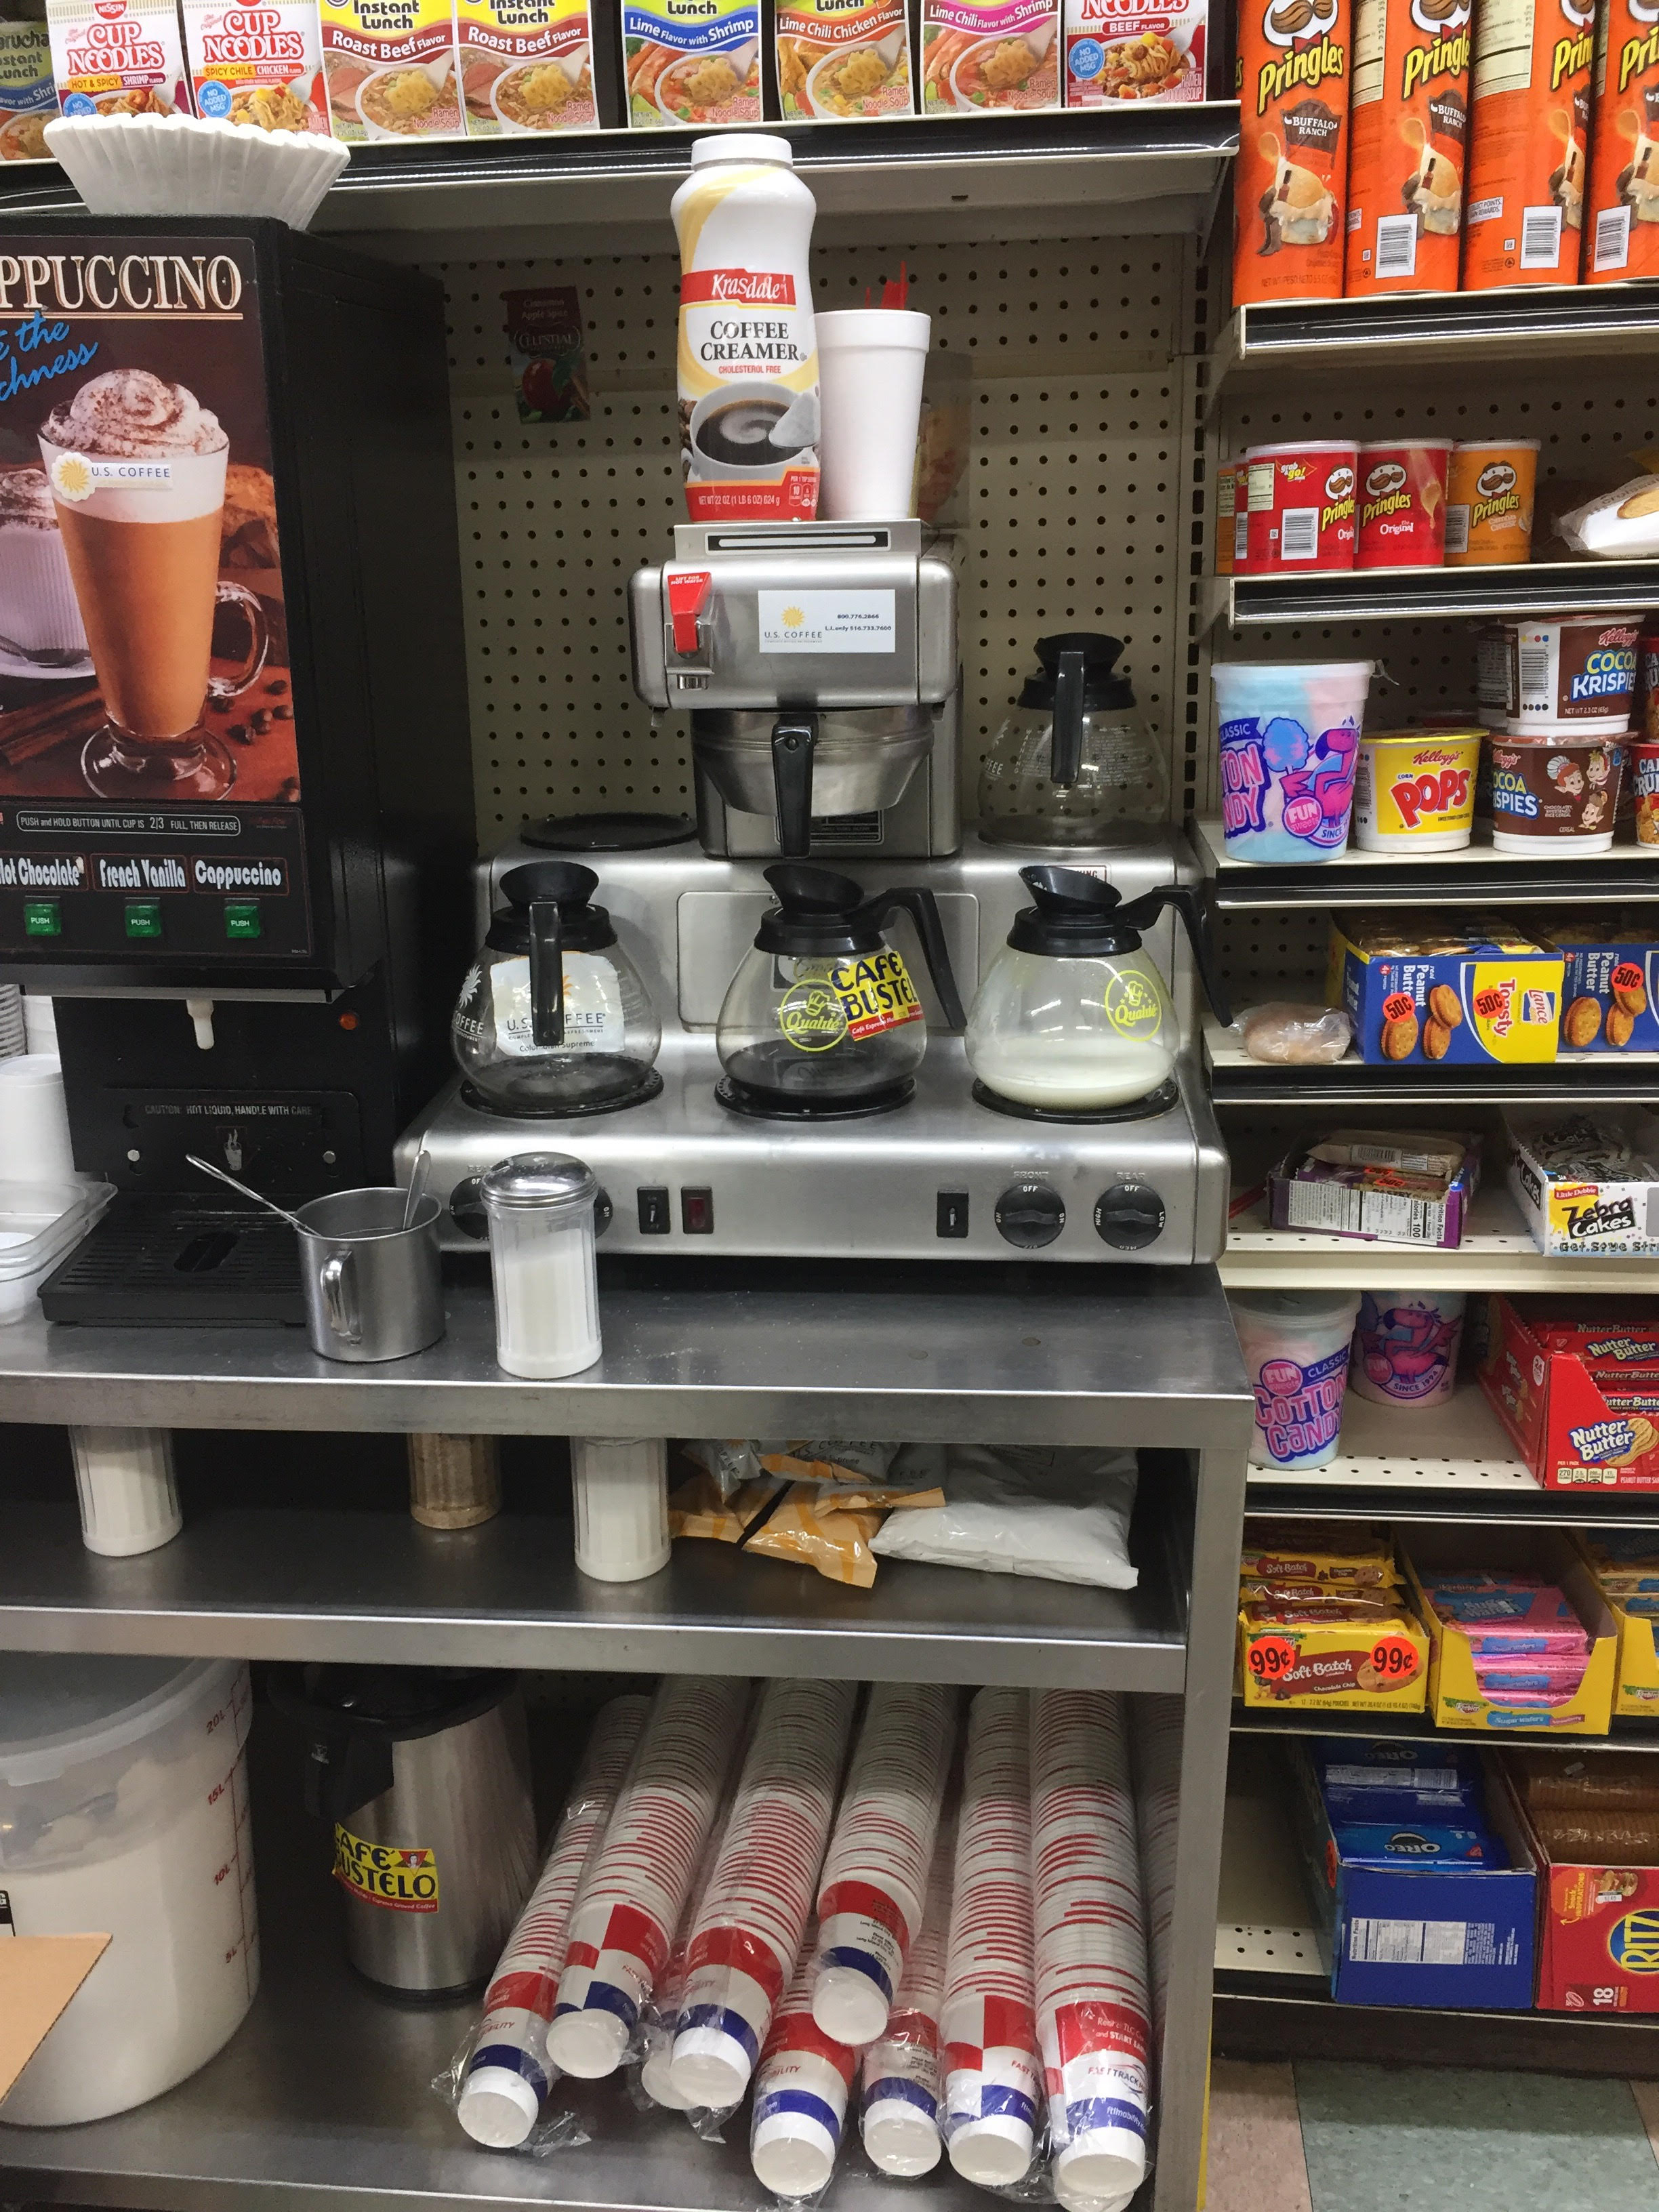 Massivemedia provides coffee cup advertising in Delis in New York City